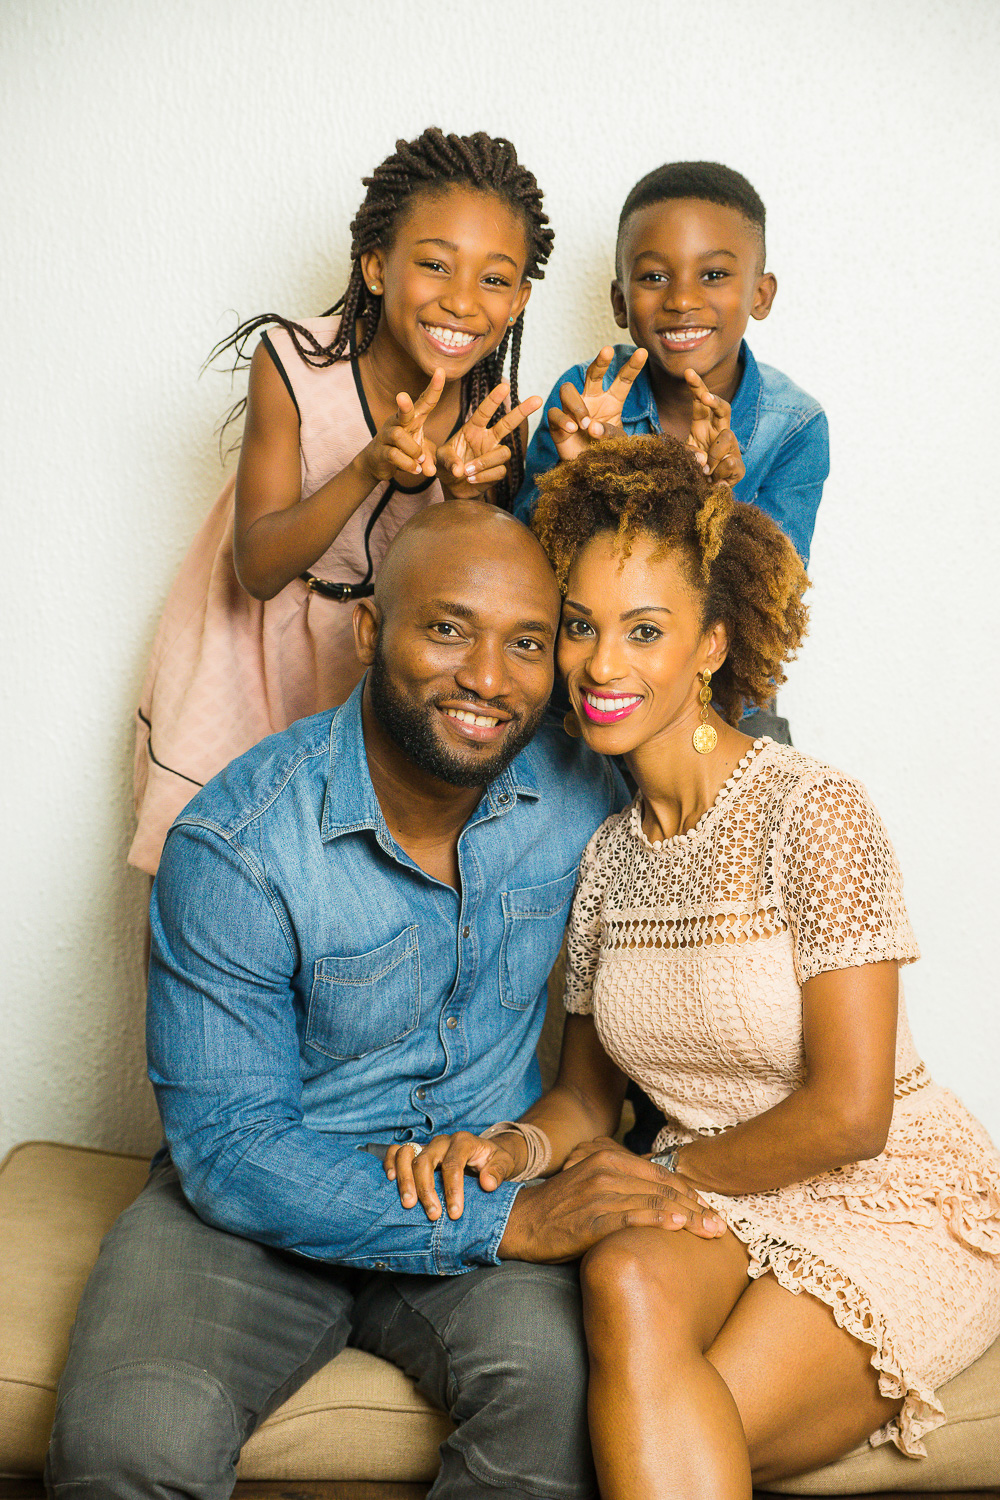 family-photography-lagos-nigeria-picture